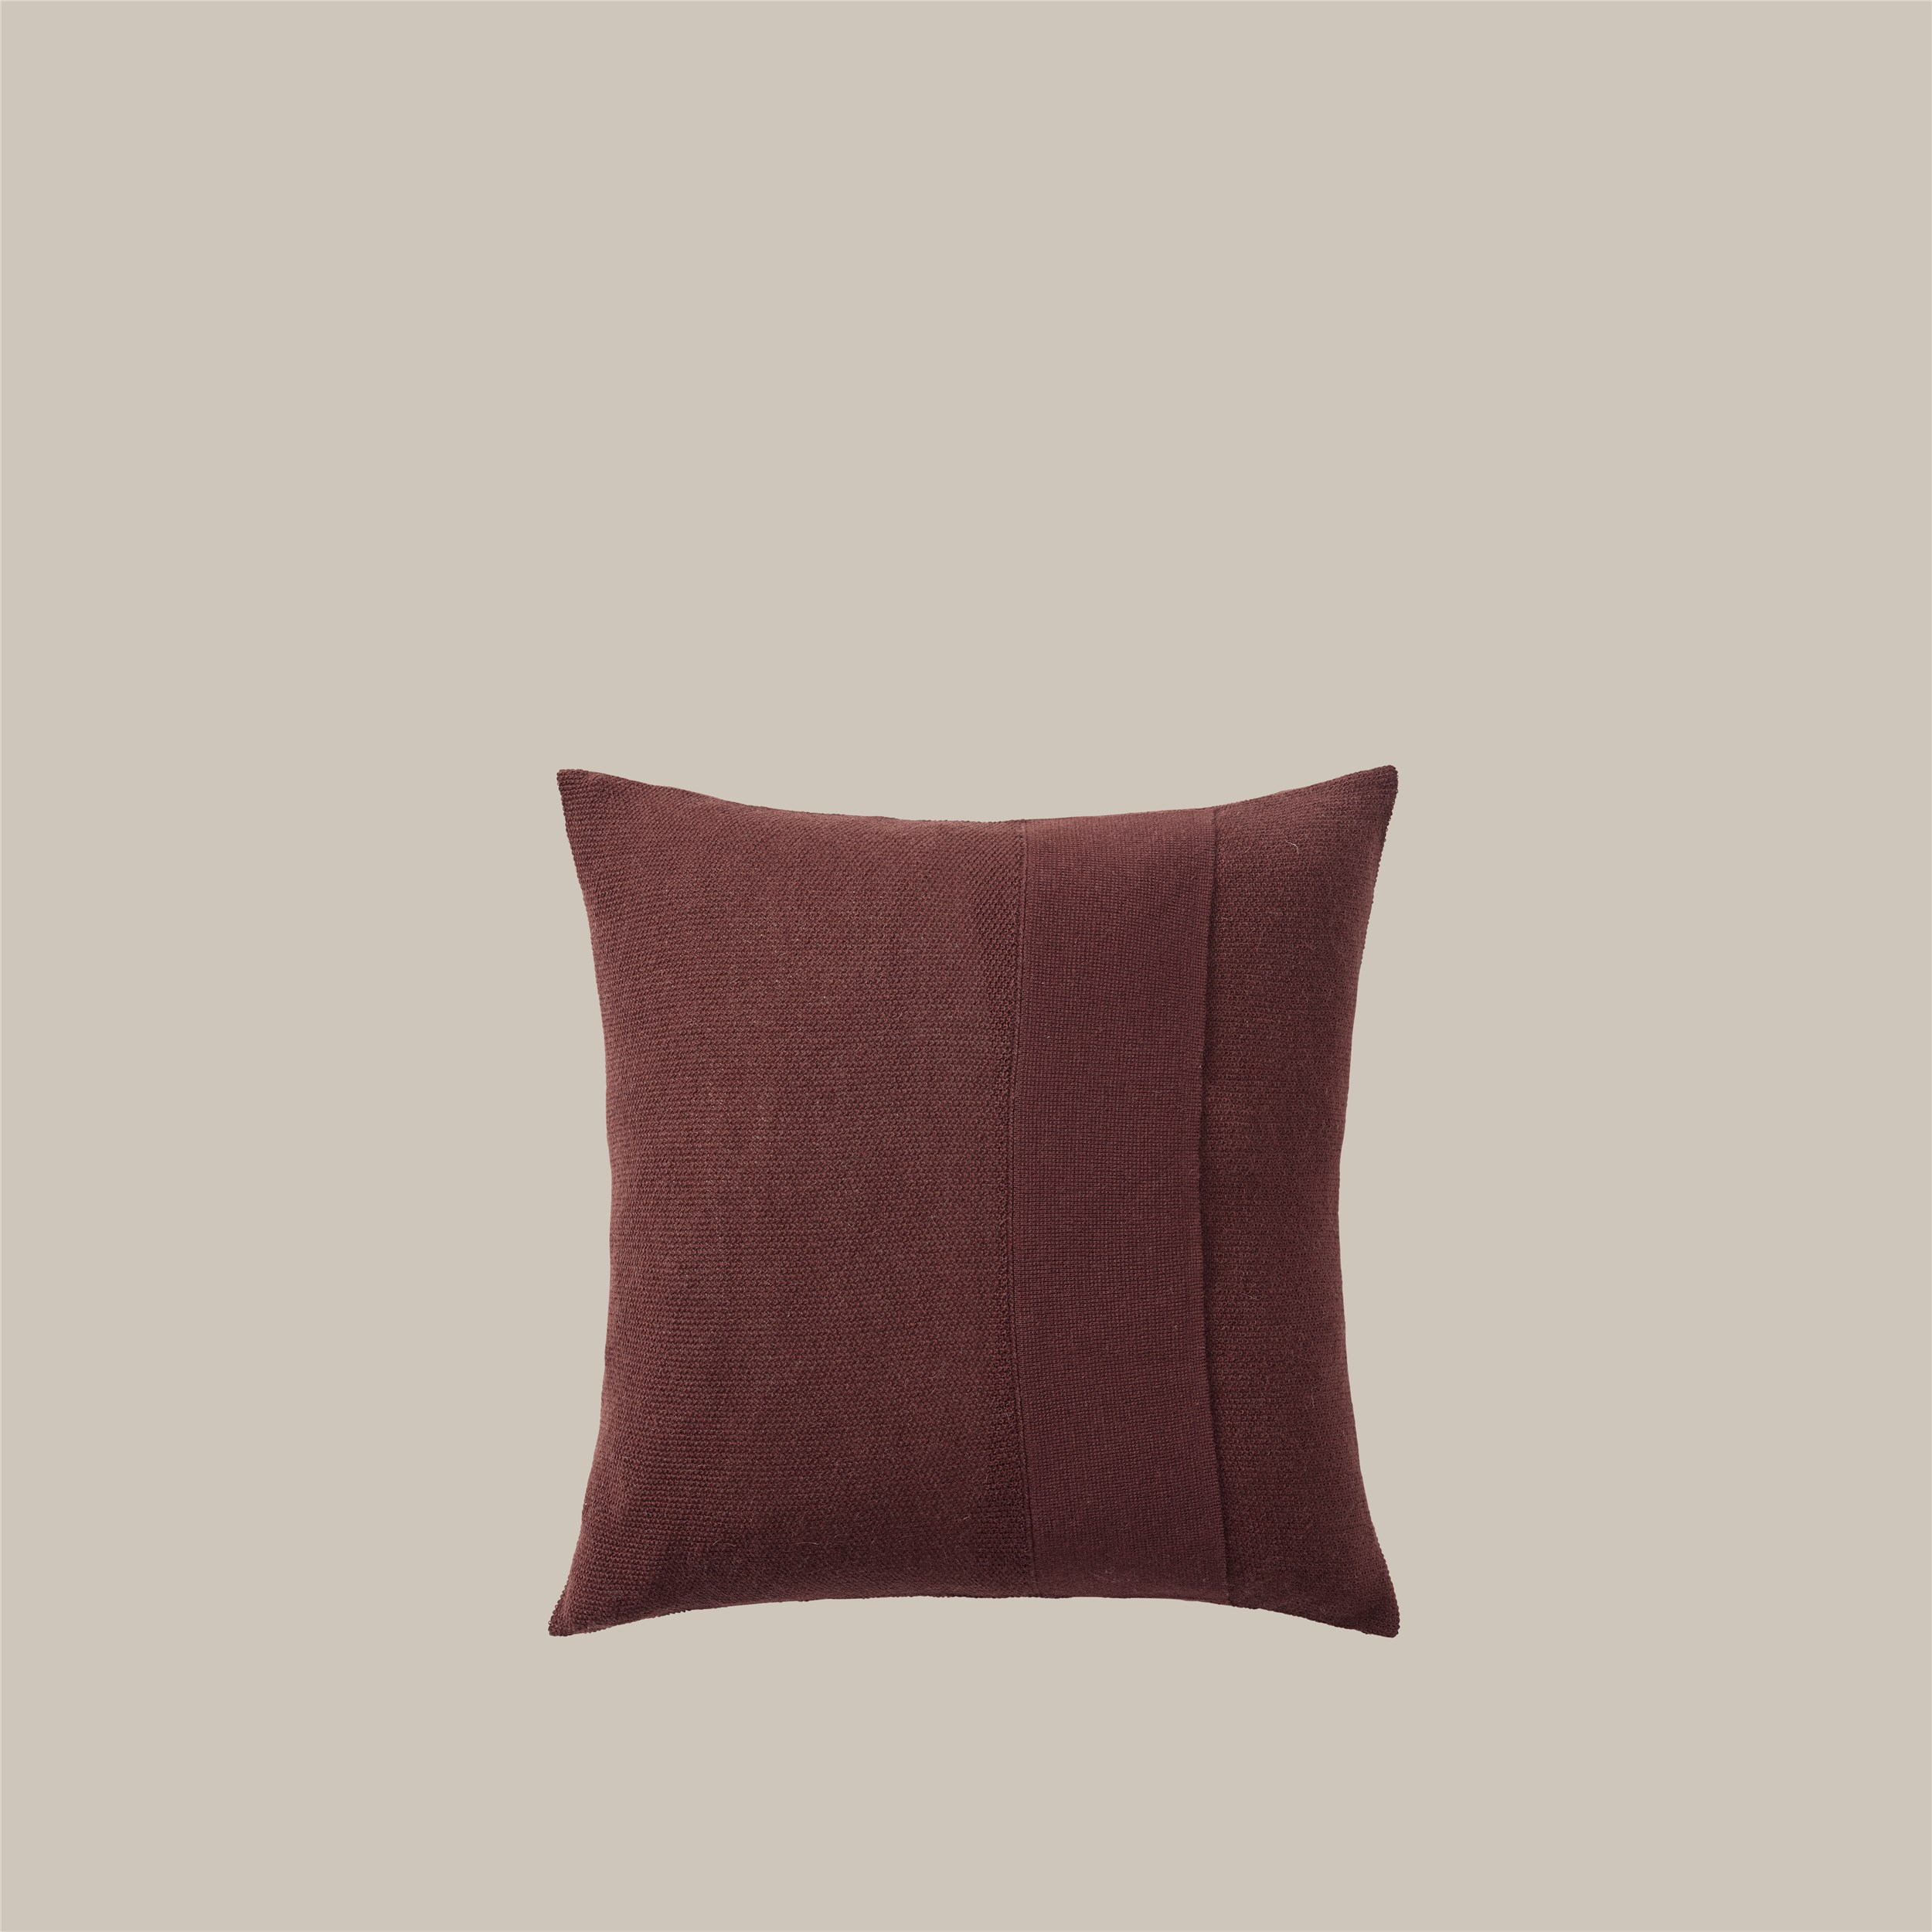 Layer Cushion 50x50 burgundy